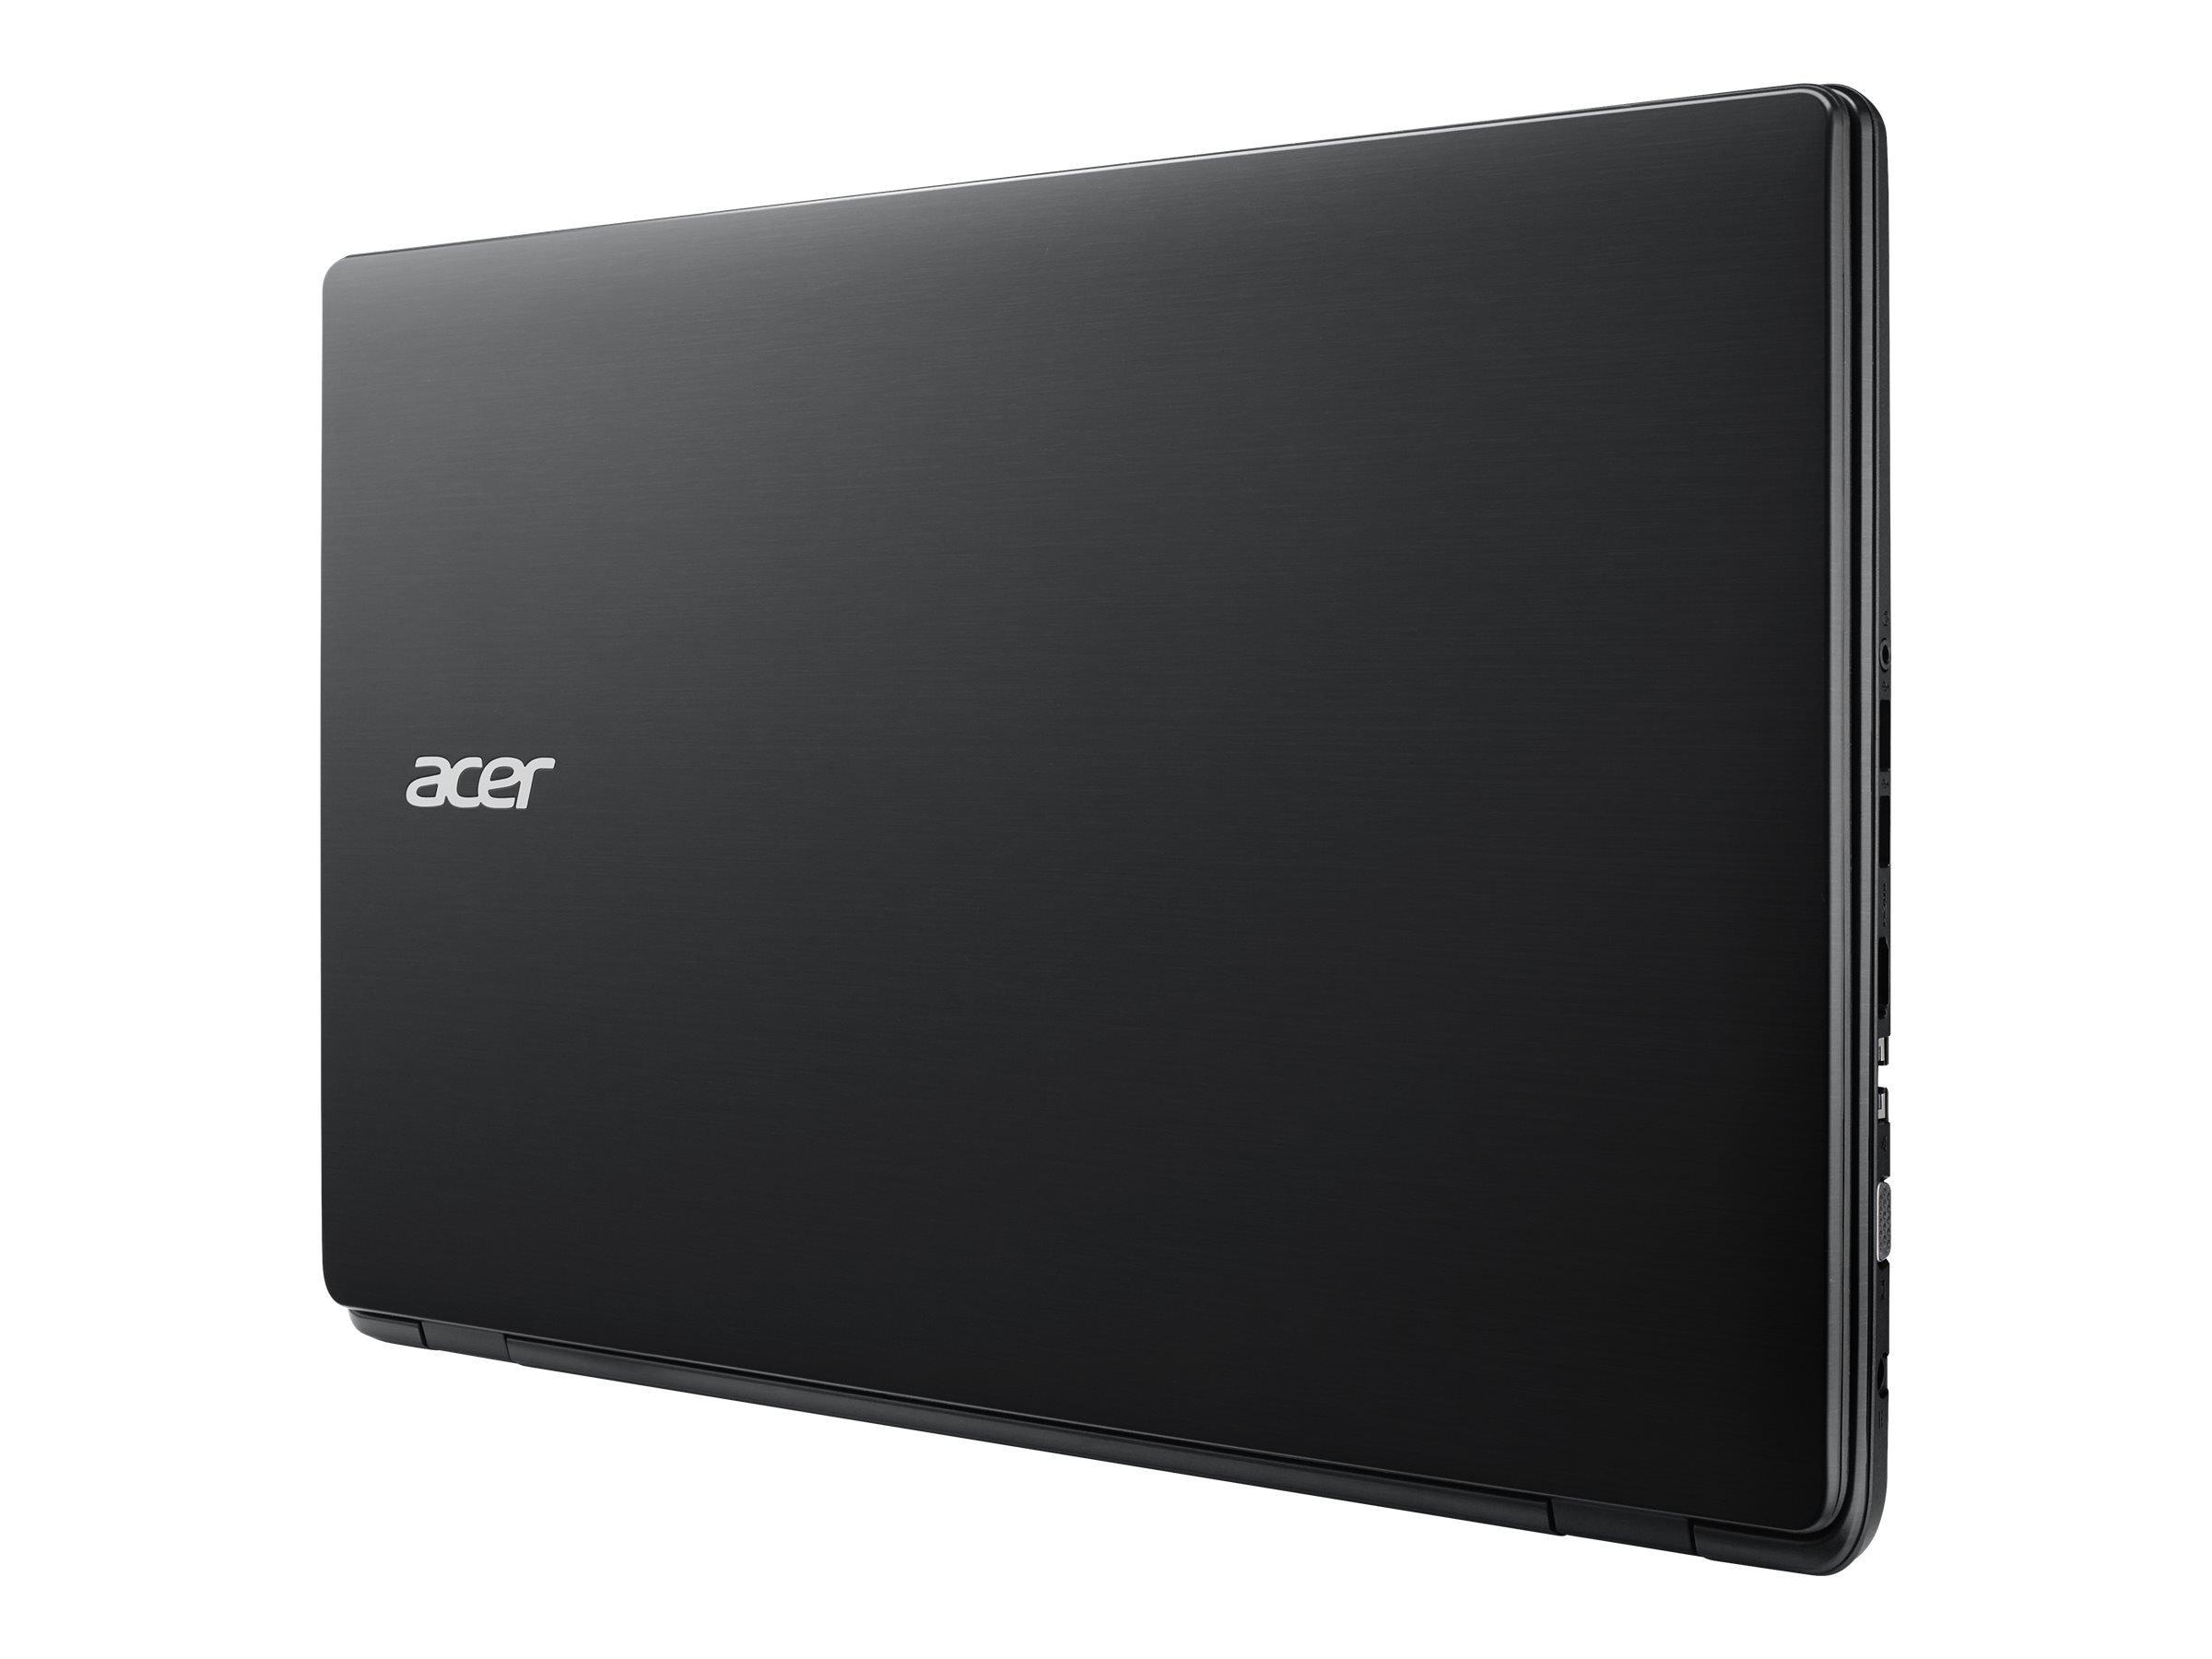 Acer Aspire E5-721-29G5 17.3 Notebook PC